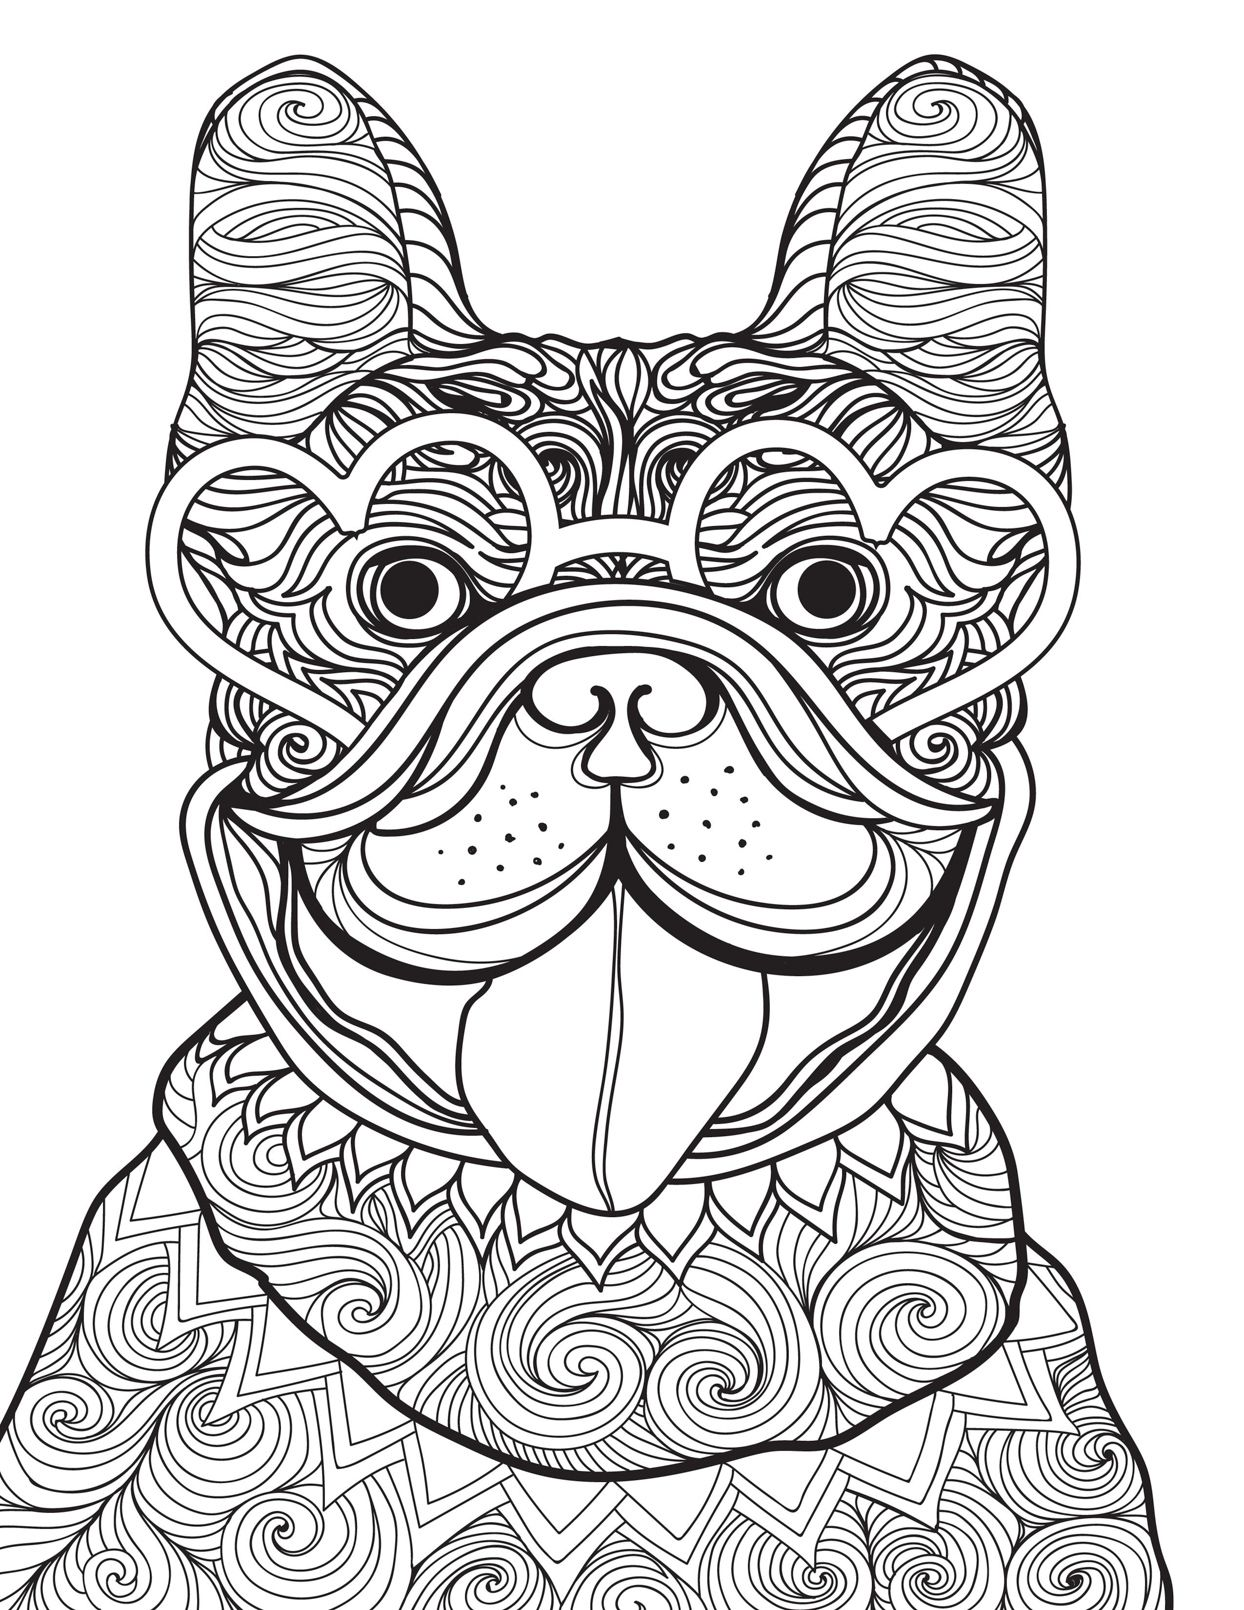 24 Free Pet Coloring Pages For Dog And Cat Owners In 2021 Dog Coloring Page Puppy Coloring Pages Horse Coloring Pages [ 1610 x 1244 Pixel ]